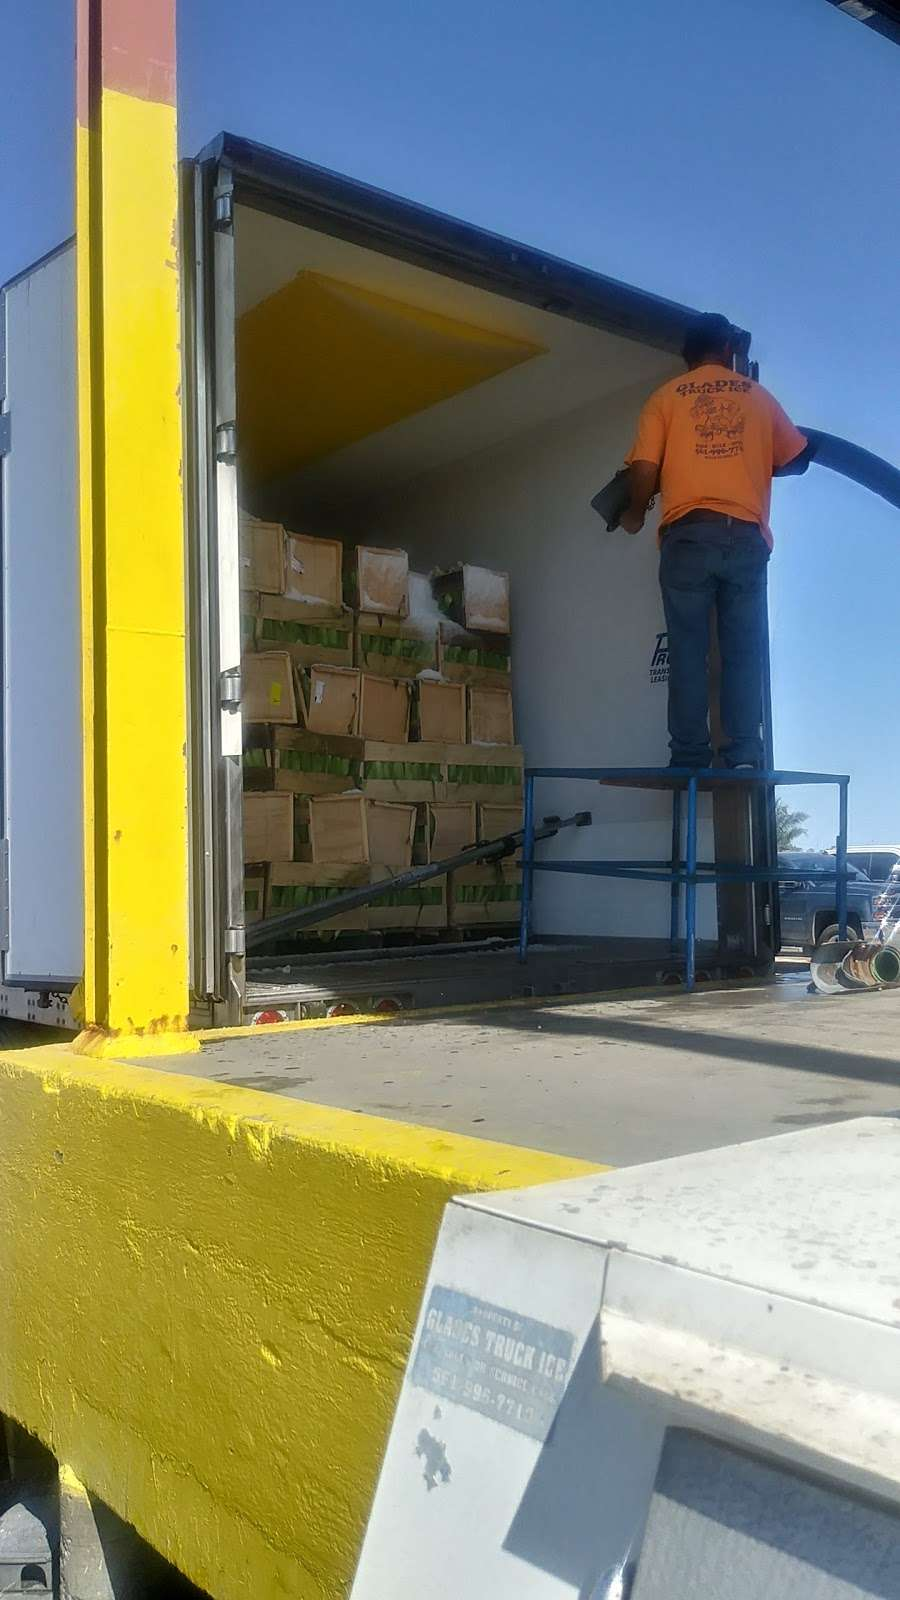 Glades Truck Ice Inc - store  | Photo 8 of 9 | Address: 1501 S Main St, Belle Glade, FL 33430, USA | Phone: (561) 996-7710